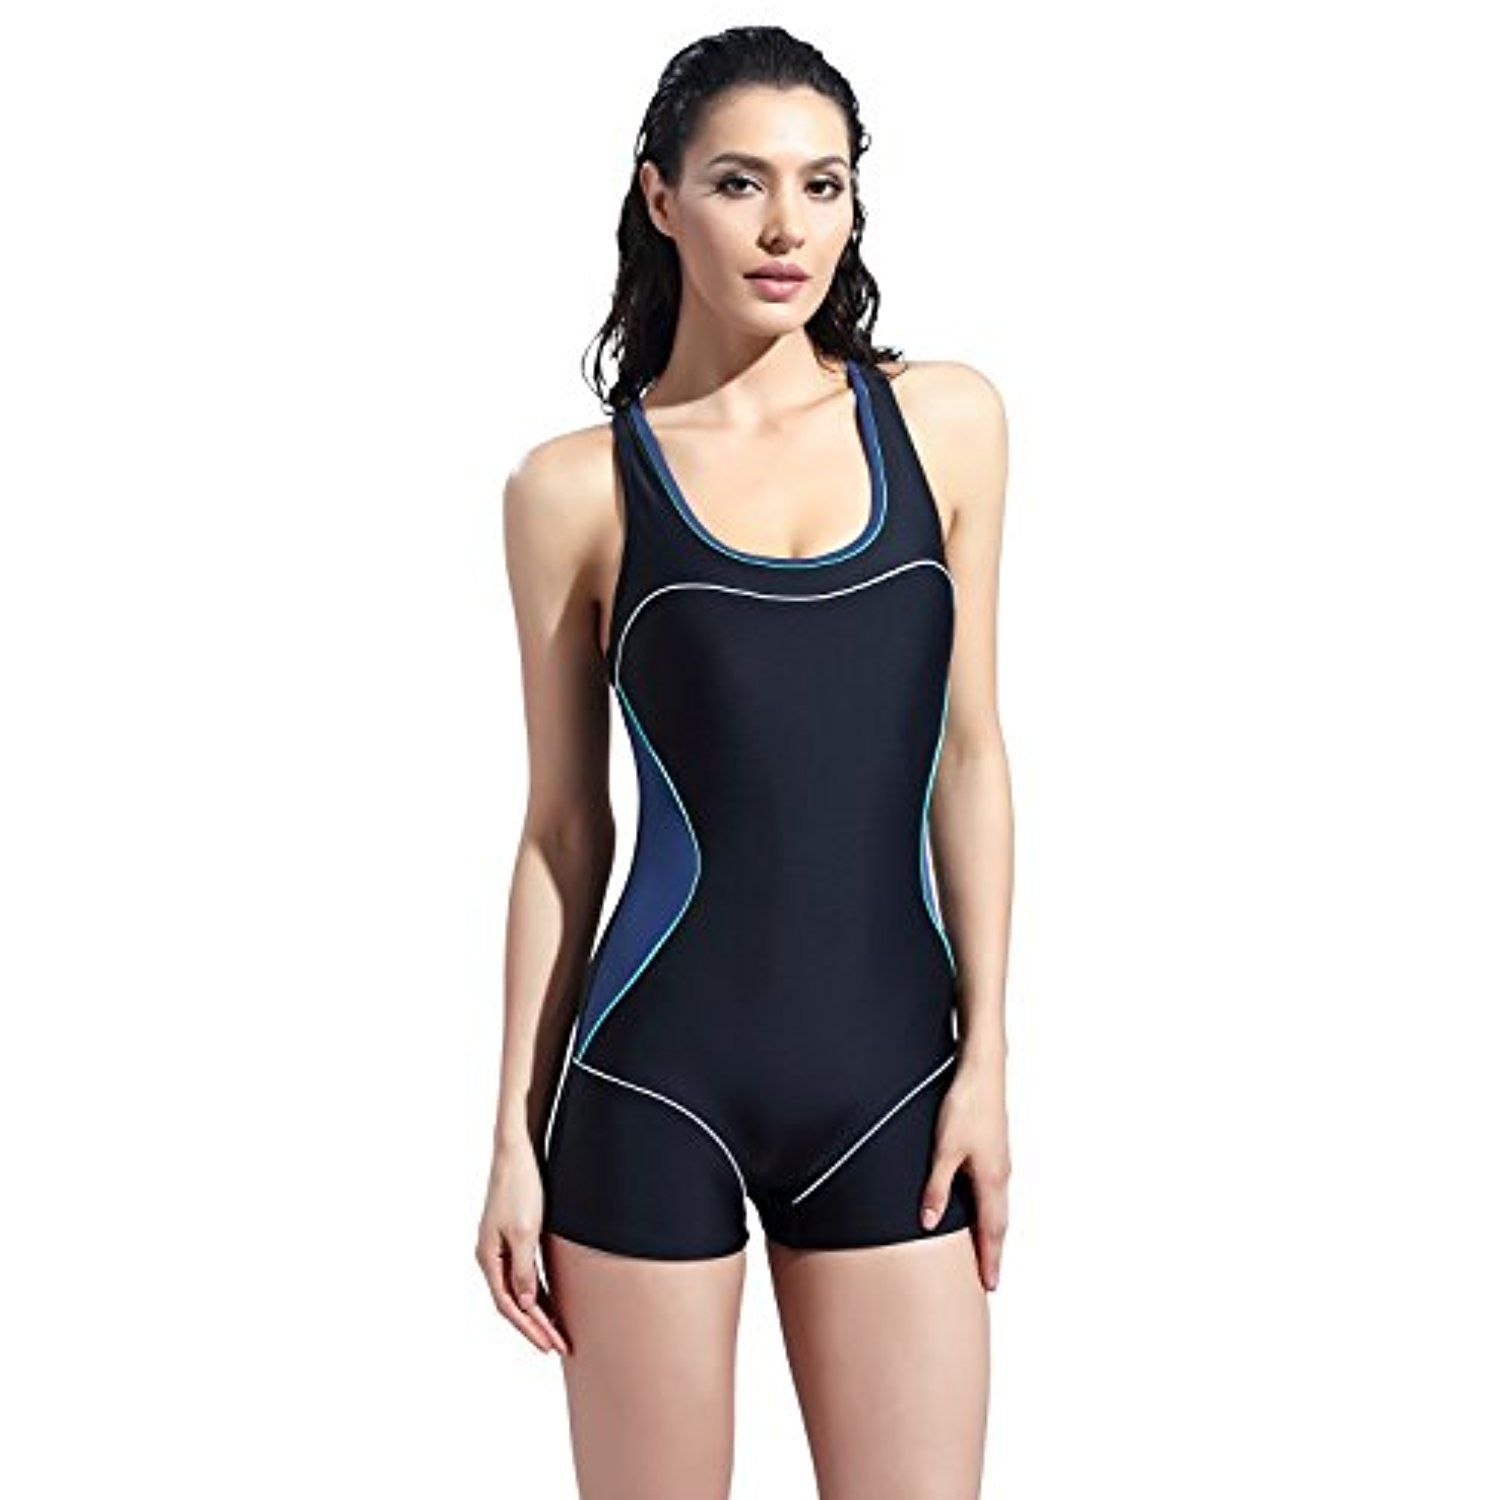 078c3f2f09 RELTANGL Women's One Piece Boxer Boyleg Swimsuit Slimming Racerback  Halterneck Athletic Swimwear Tankini *** Check out this great product.